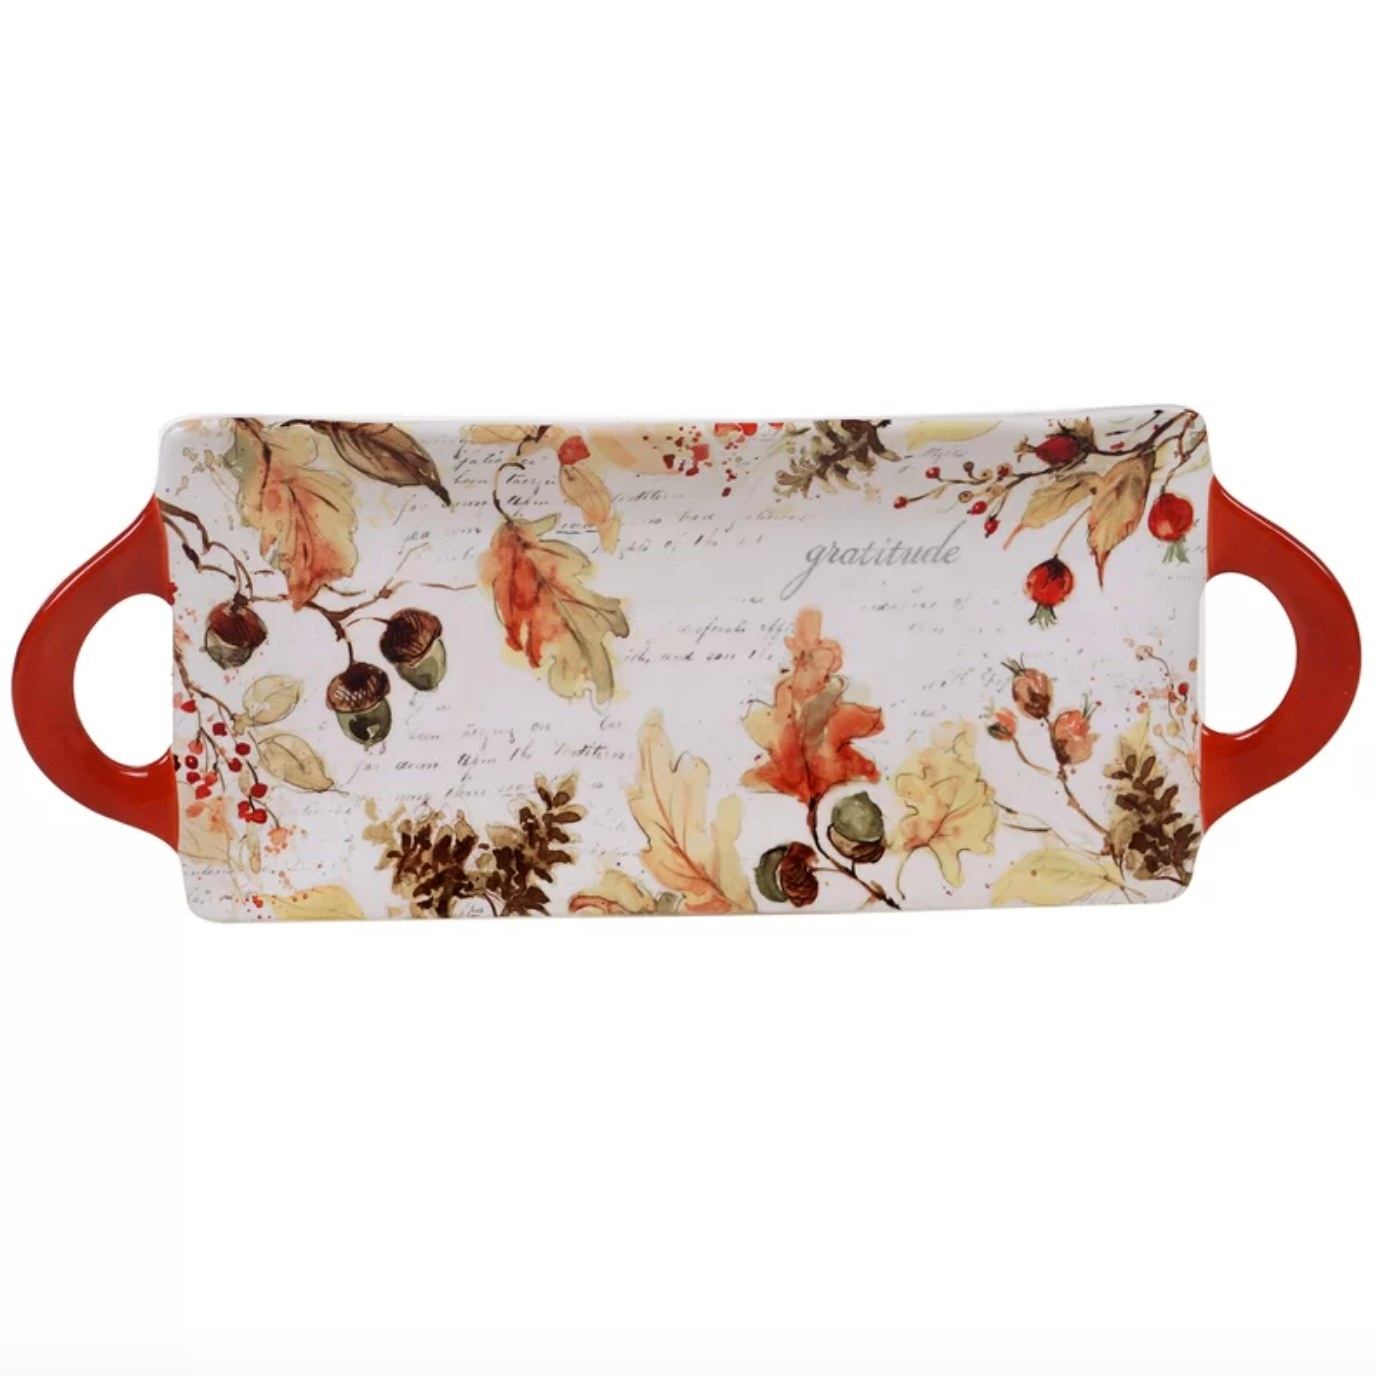 The rectangular tray with a fall motif with leaves and pinecones